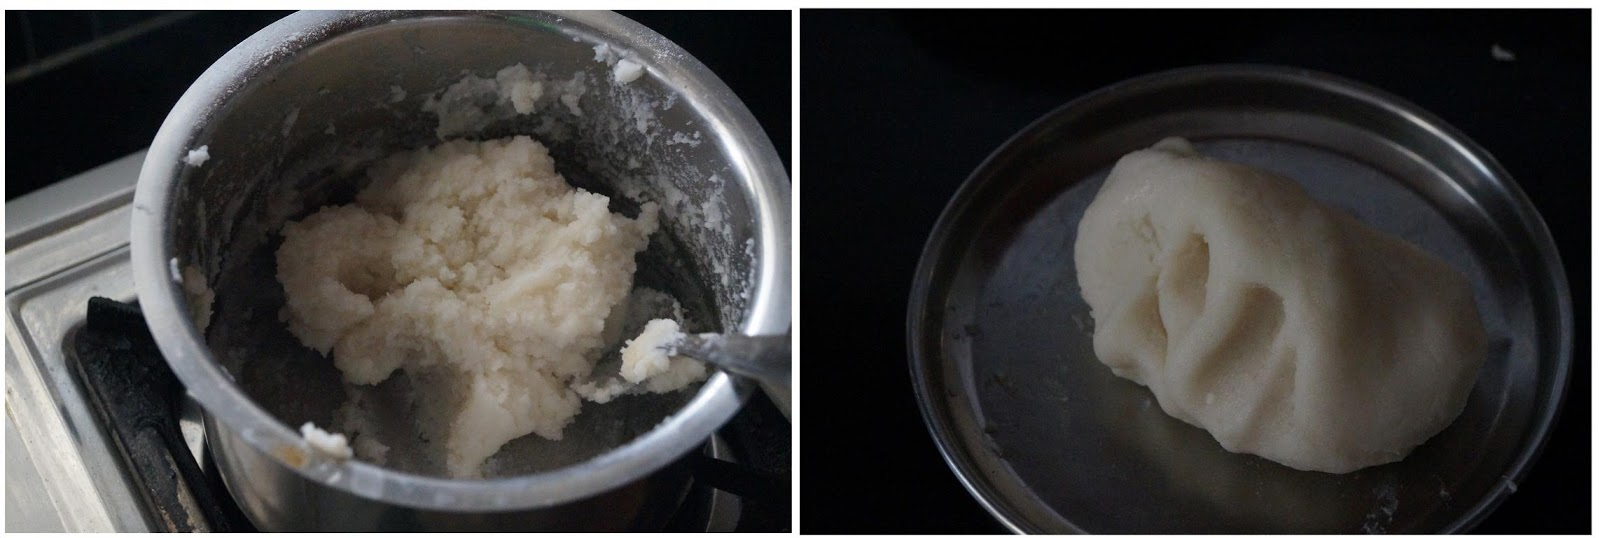 making the rice flour dough to make undralla payasam